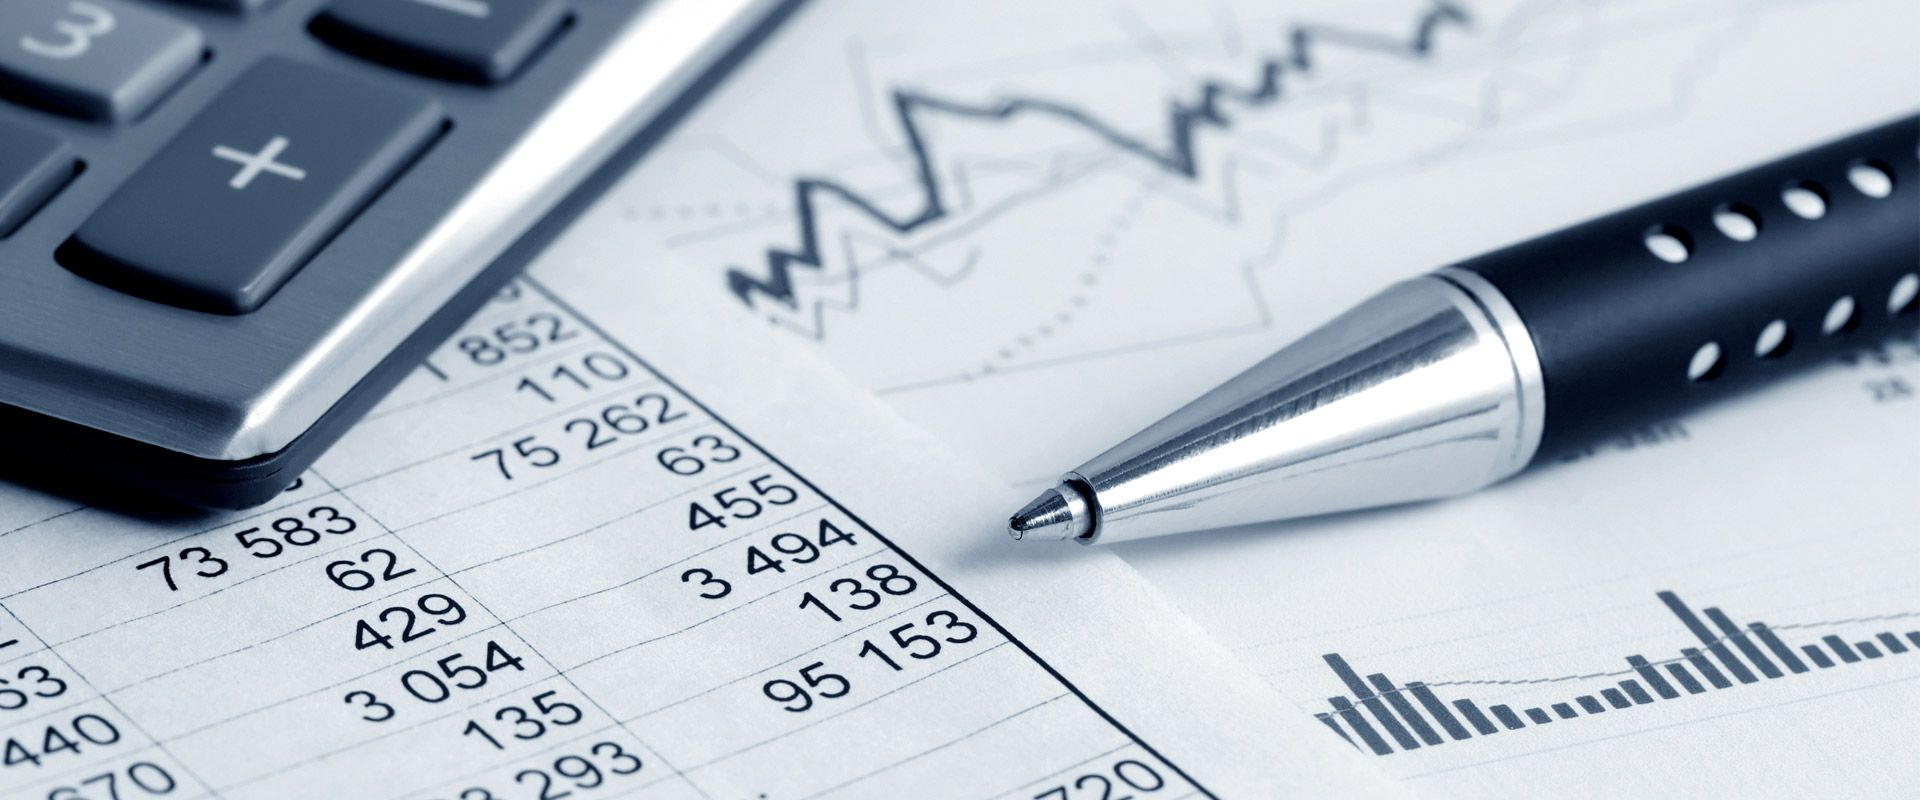 1920x800 Best 44+ Professional Accounting Backgrounds on HipWallpaper ...